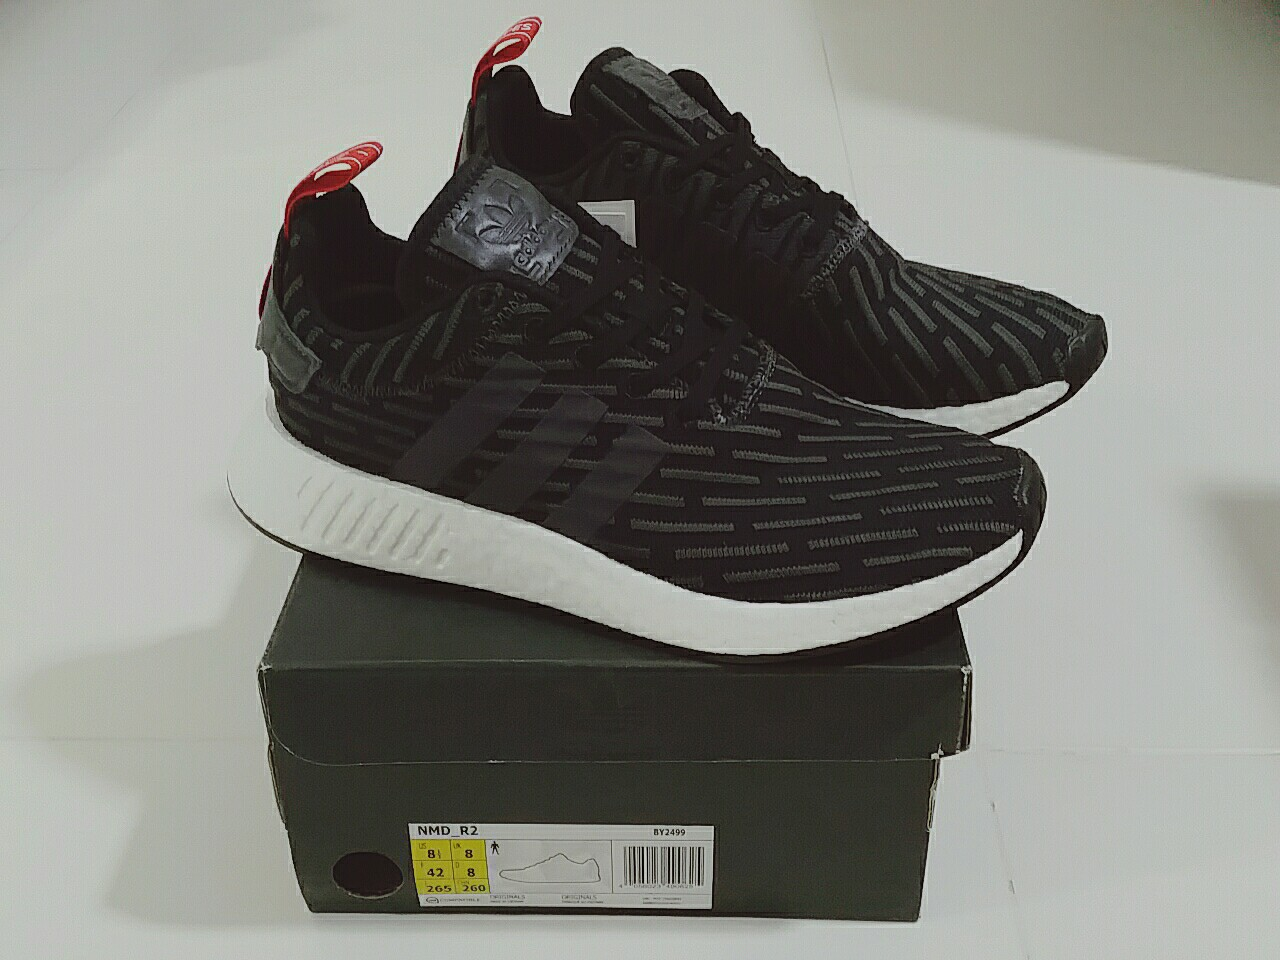 cb646c5fd5073 Footlocker Exclusive ADIDAS NMD R2 Primeknit PK Foot Locker Europe ...